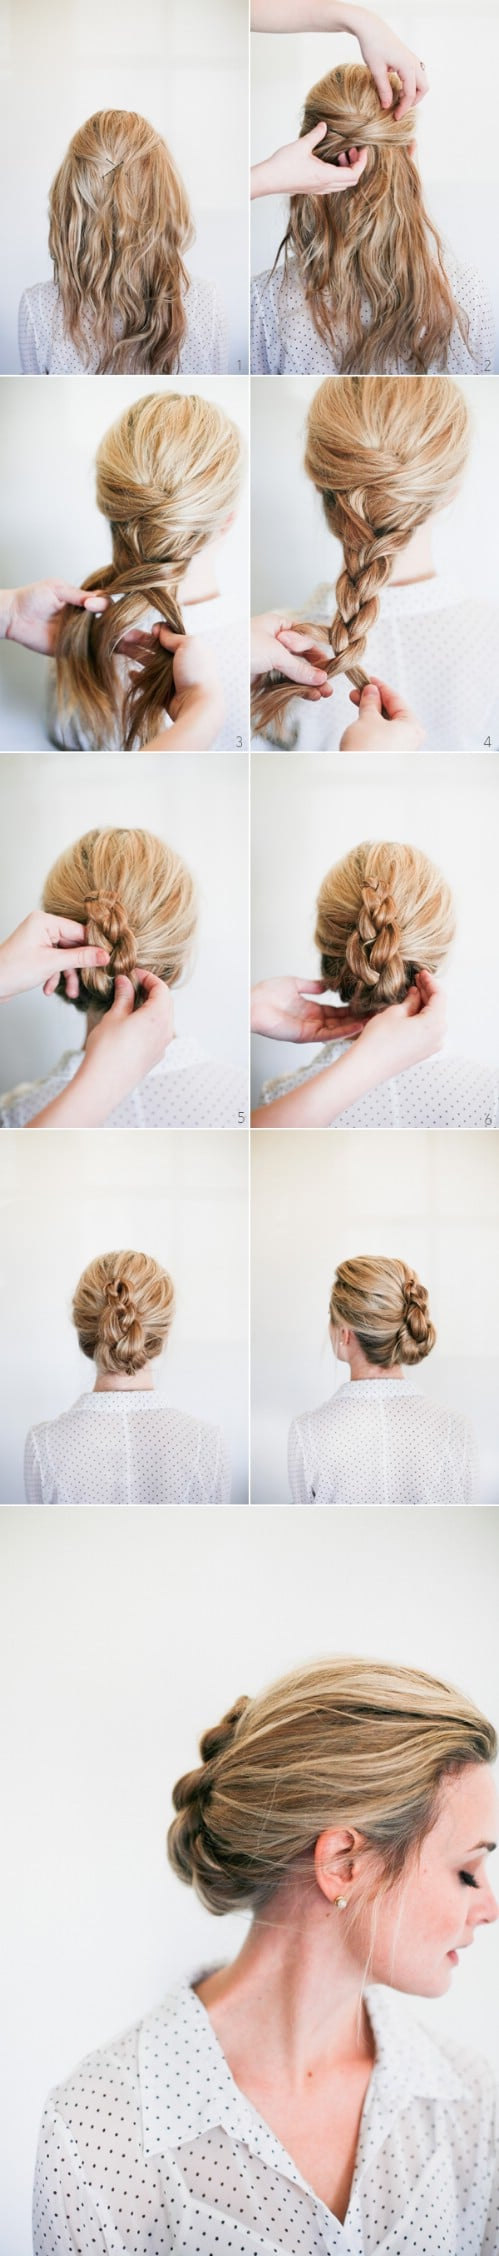 20 Gorgeous 5-Minute Hairstyles to Save You some Snooze Time - DIY ...